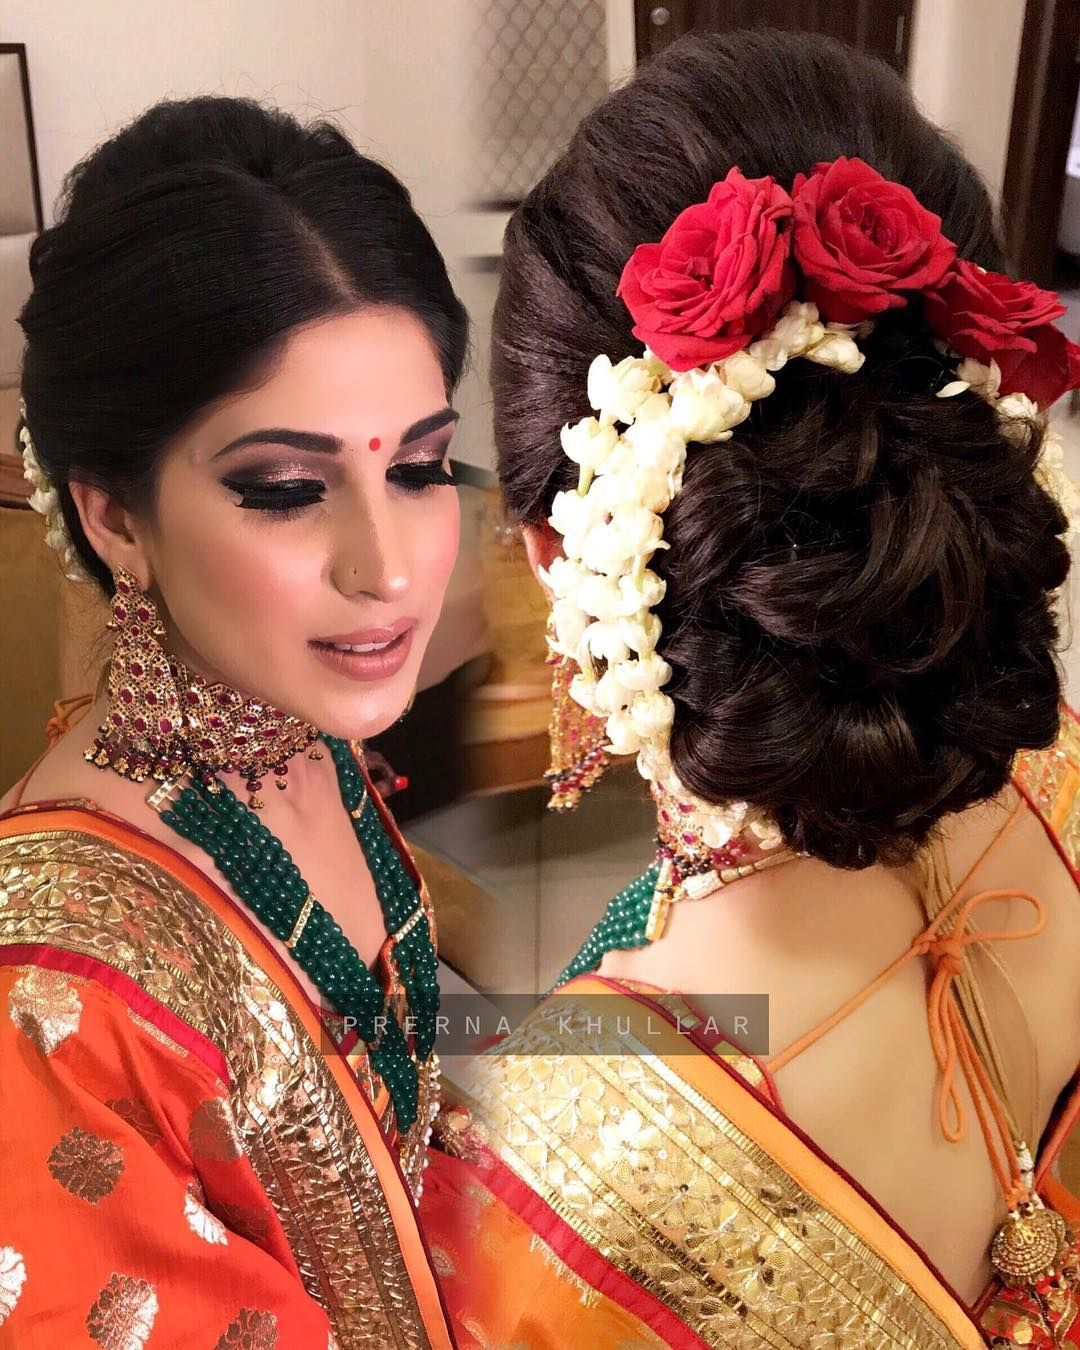 pin by neha singh on gajra in 2019 | indian wedding